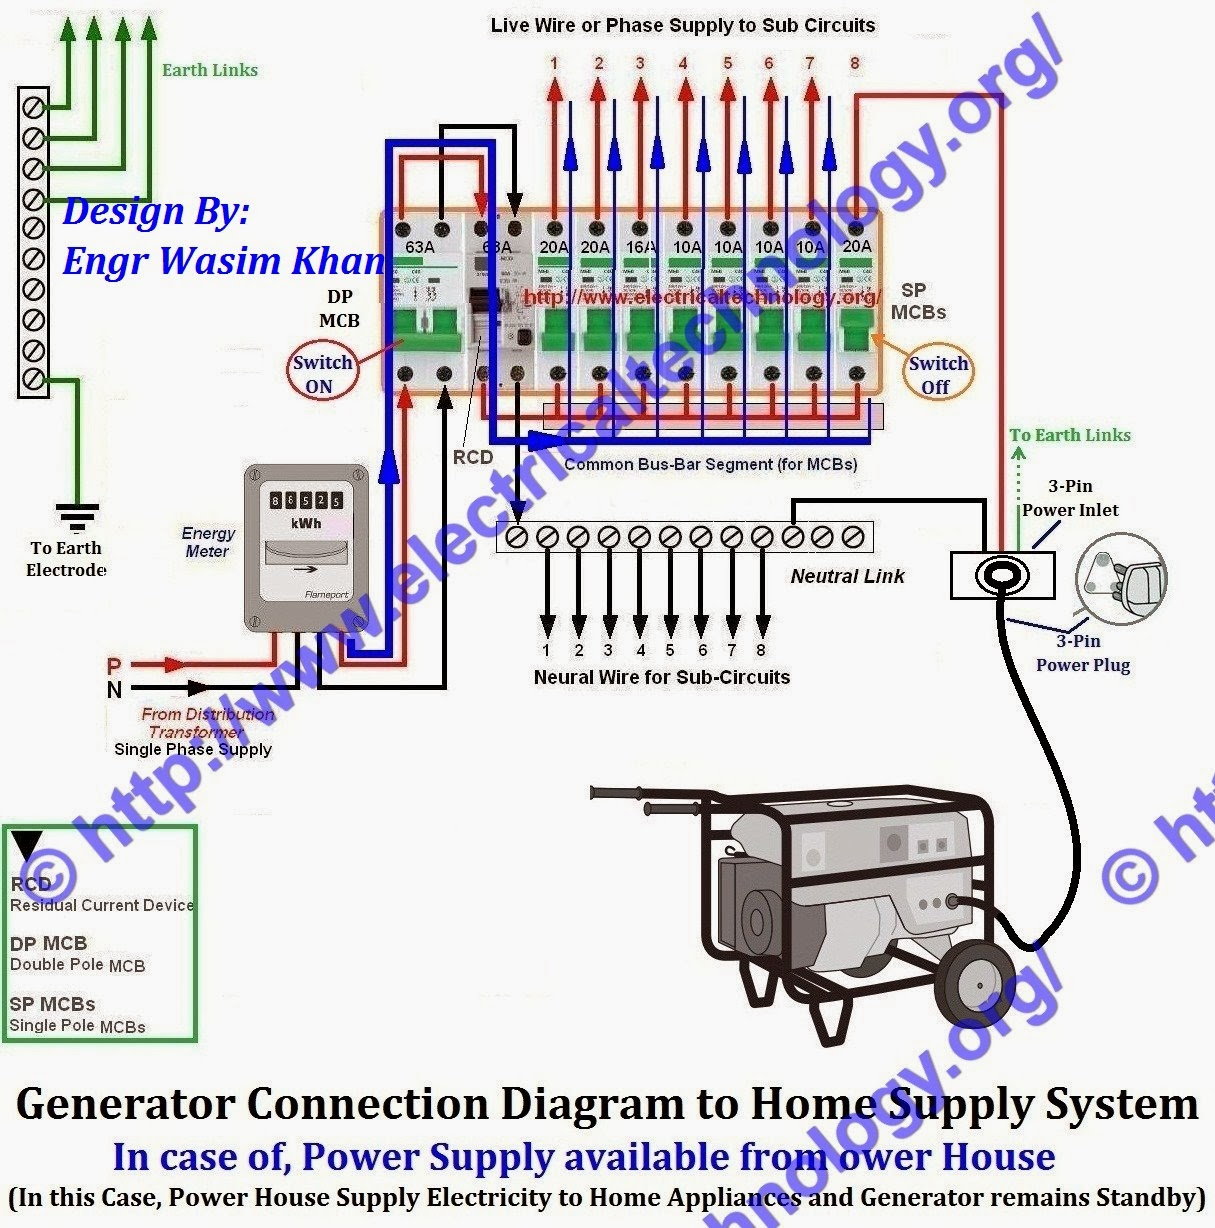 Outboard Ignition Switch Mag o Wiring together with 30 Hp Kohler Engine further Predator 4000 Generator Wiring Diagram as well Ch ion Generator 7000 Watt Wiring Diagram For moreover Wiring Diagram For Onan Generator 7500 Watt. on ch ion generator wiring diagram